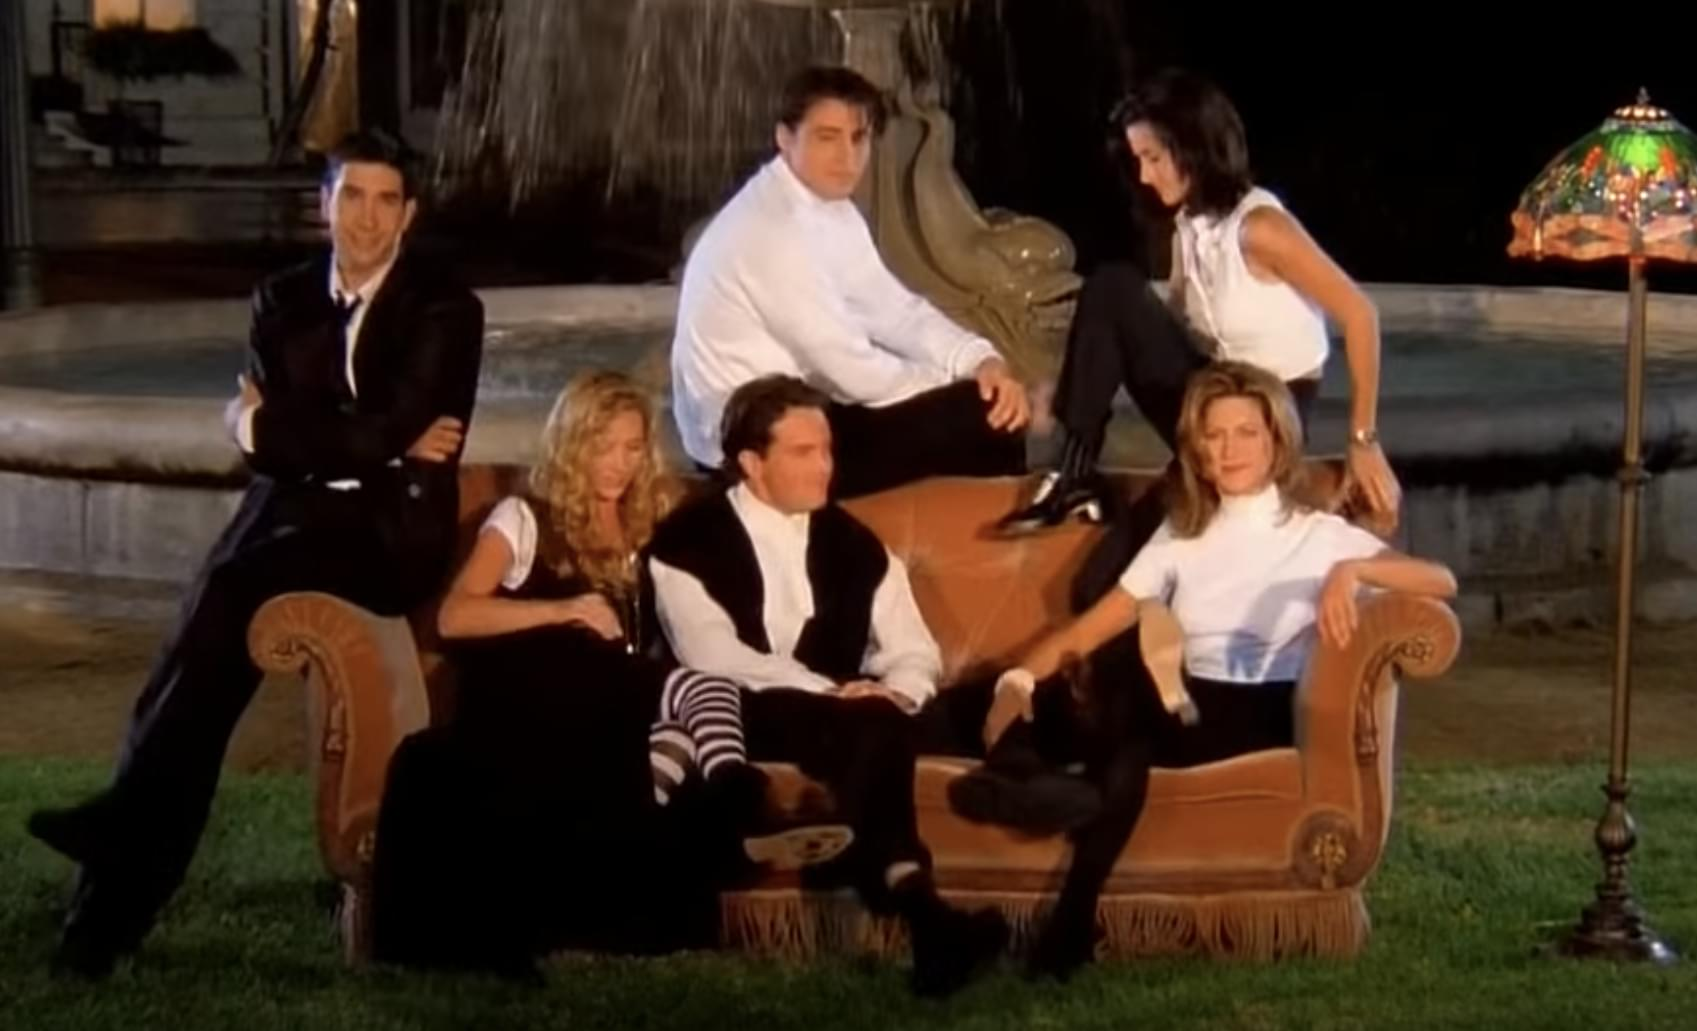 You could get paid $1,000 to watch 25 hours worth of Friends